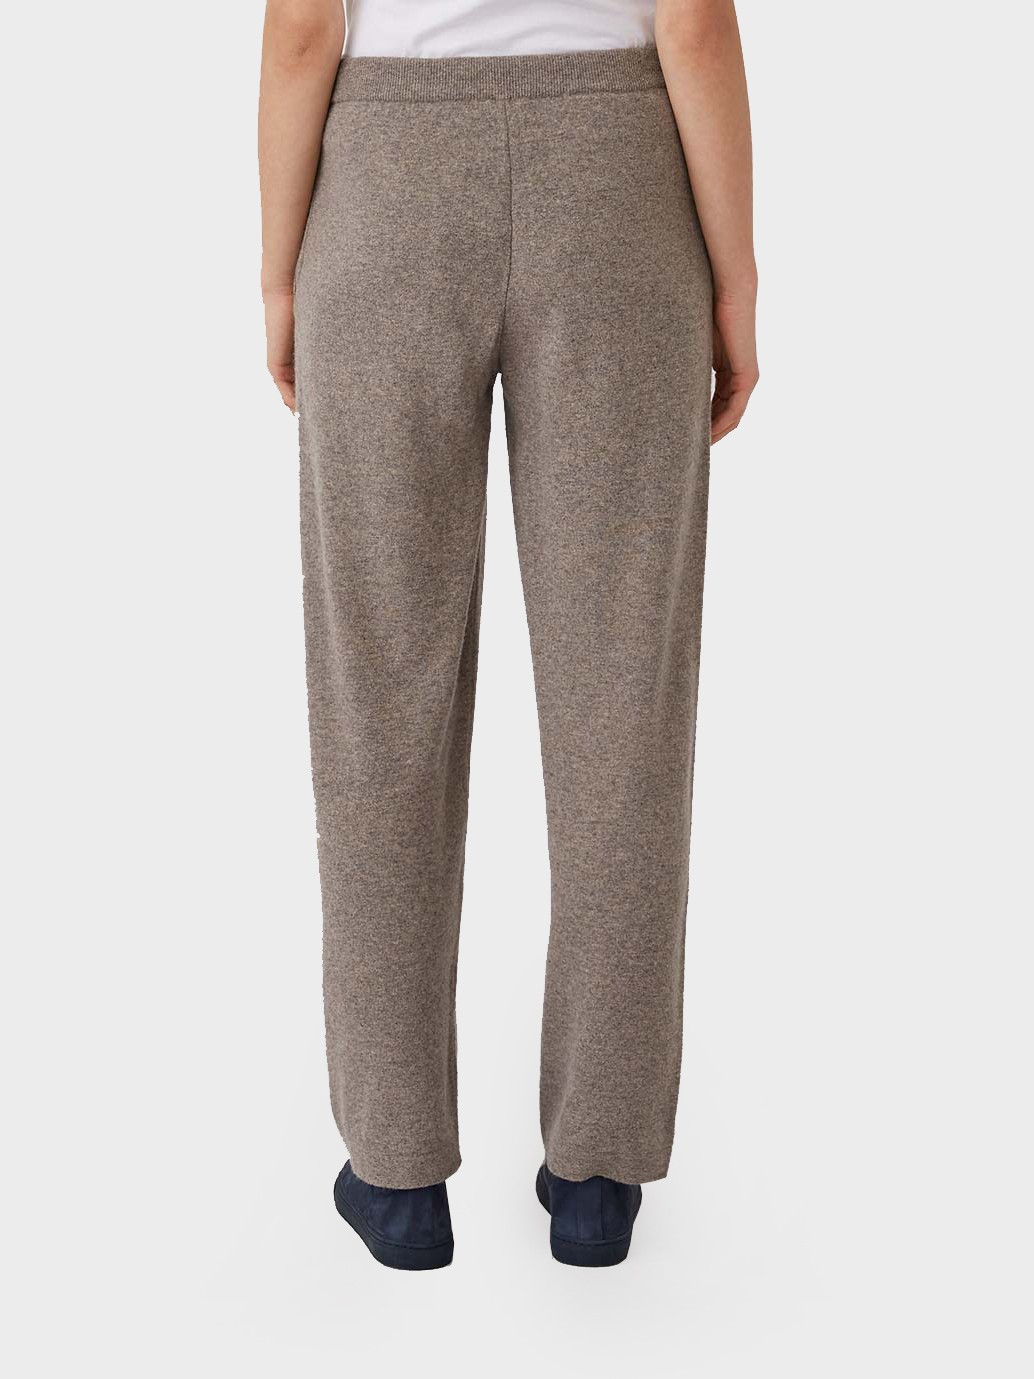 Sunspel Lambswool Lounge Pant in Dark Oatmeal Melange